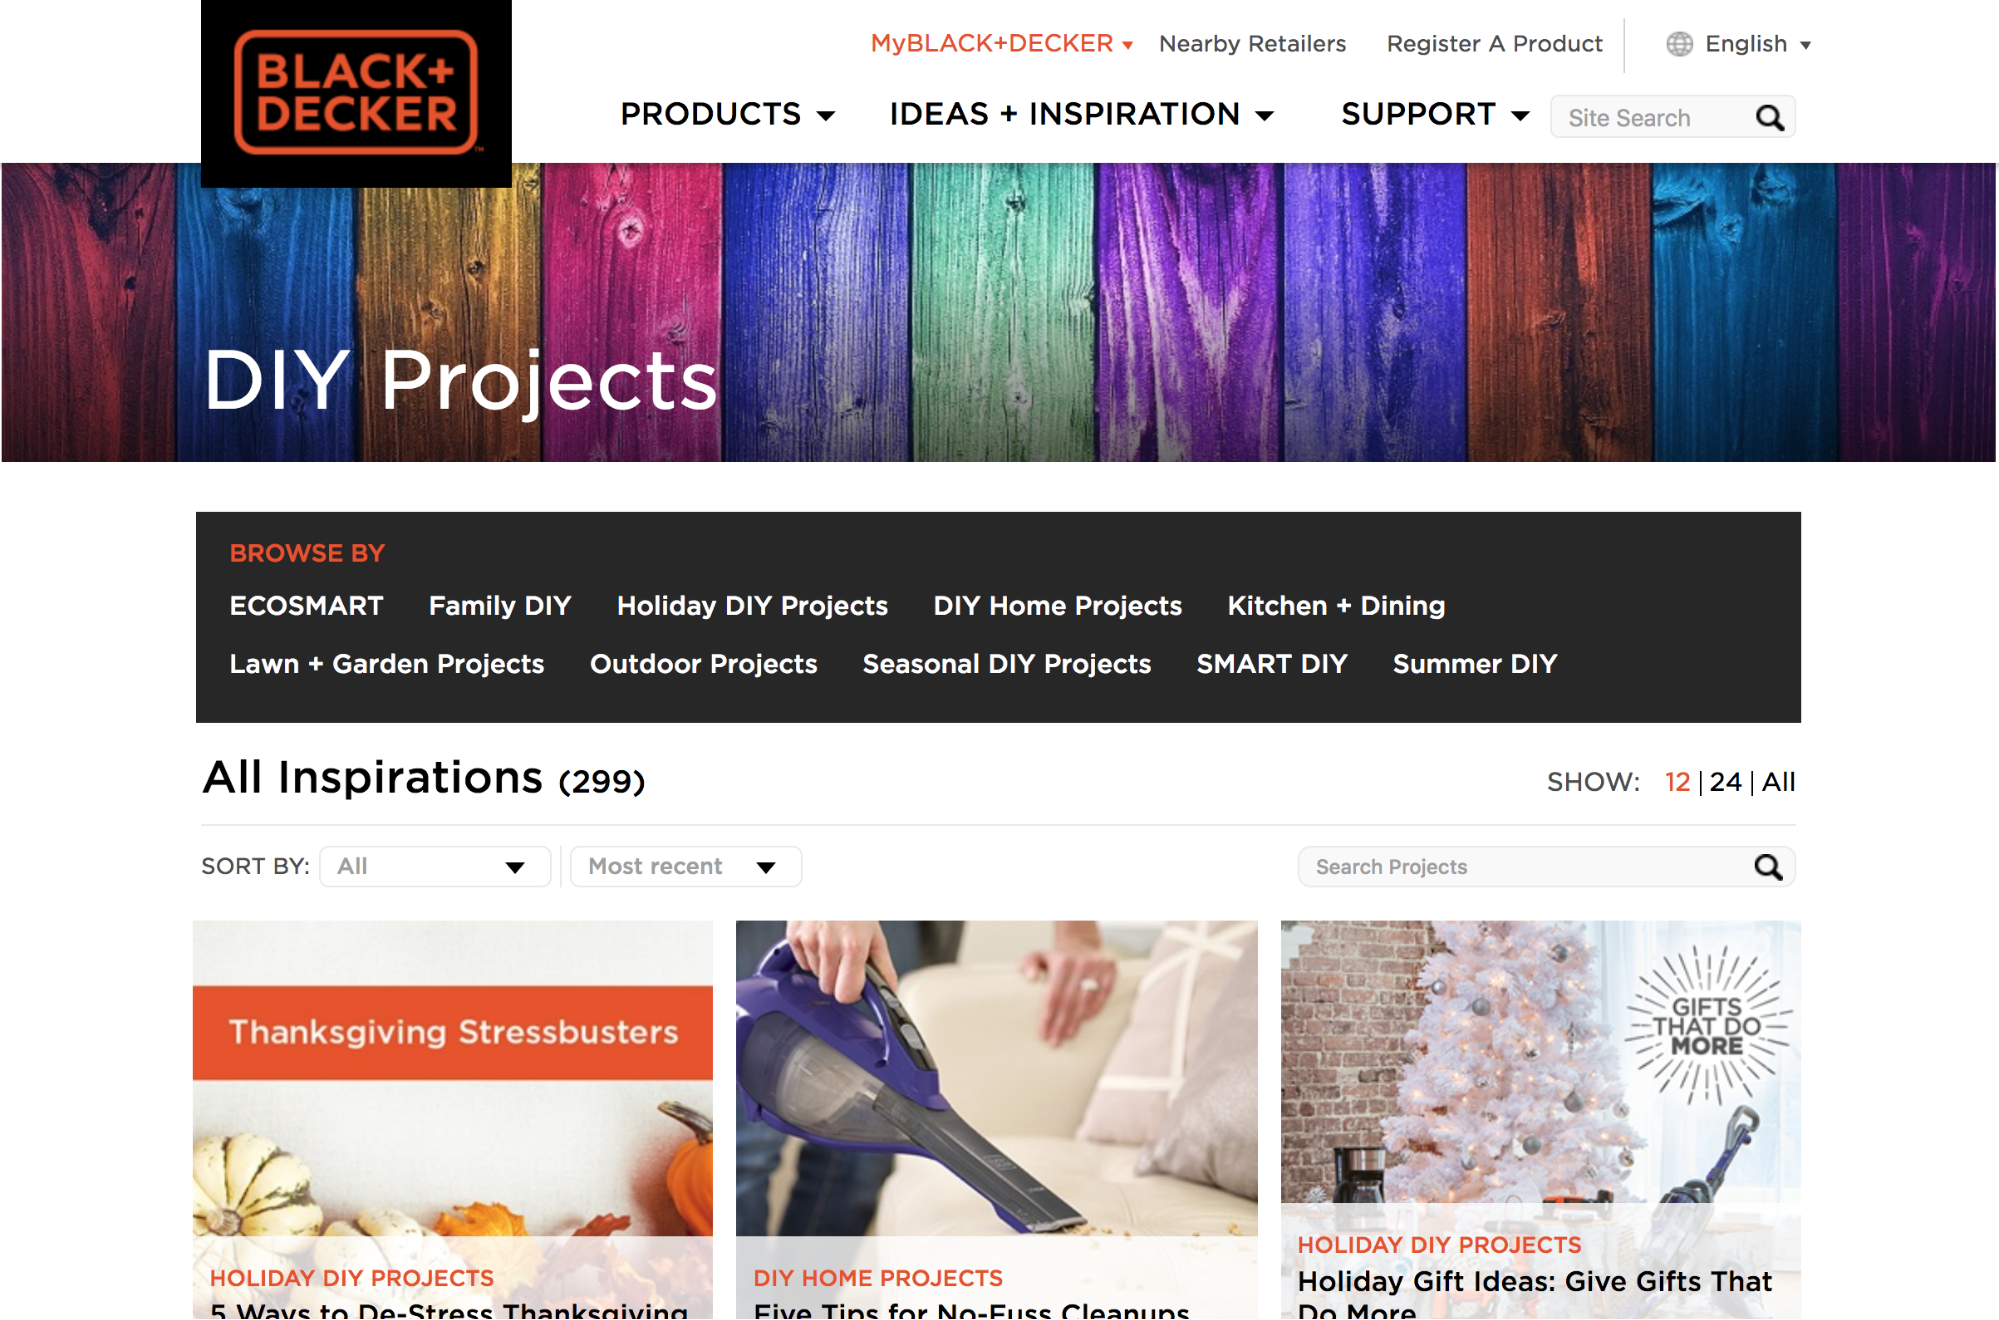 Screenshot showing DIY projects page on black+decker